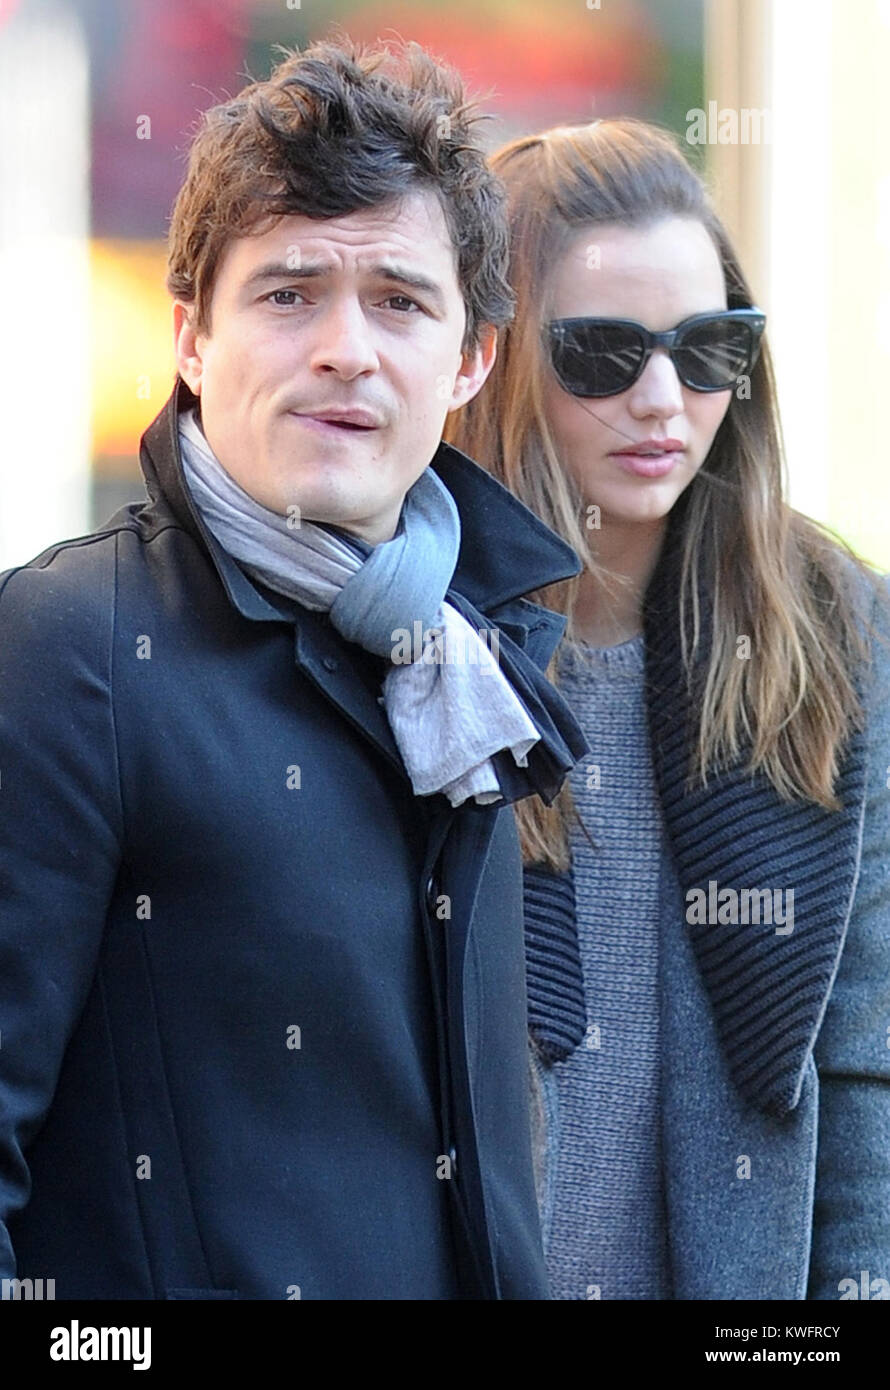 New York 30 Oktober Orlando Bloom Und Frau Miranda Kerr Cover Up